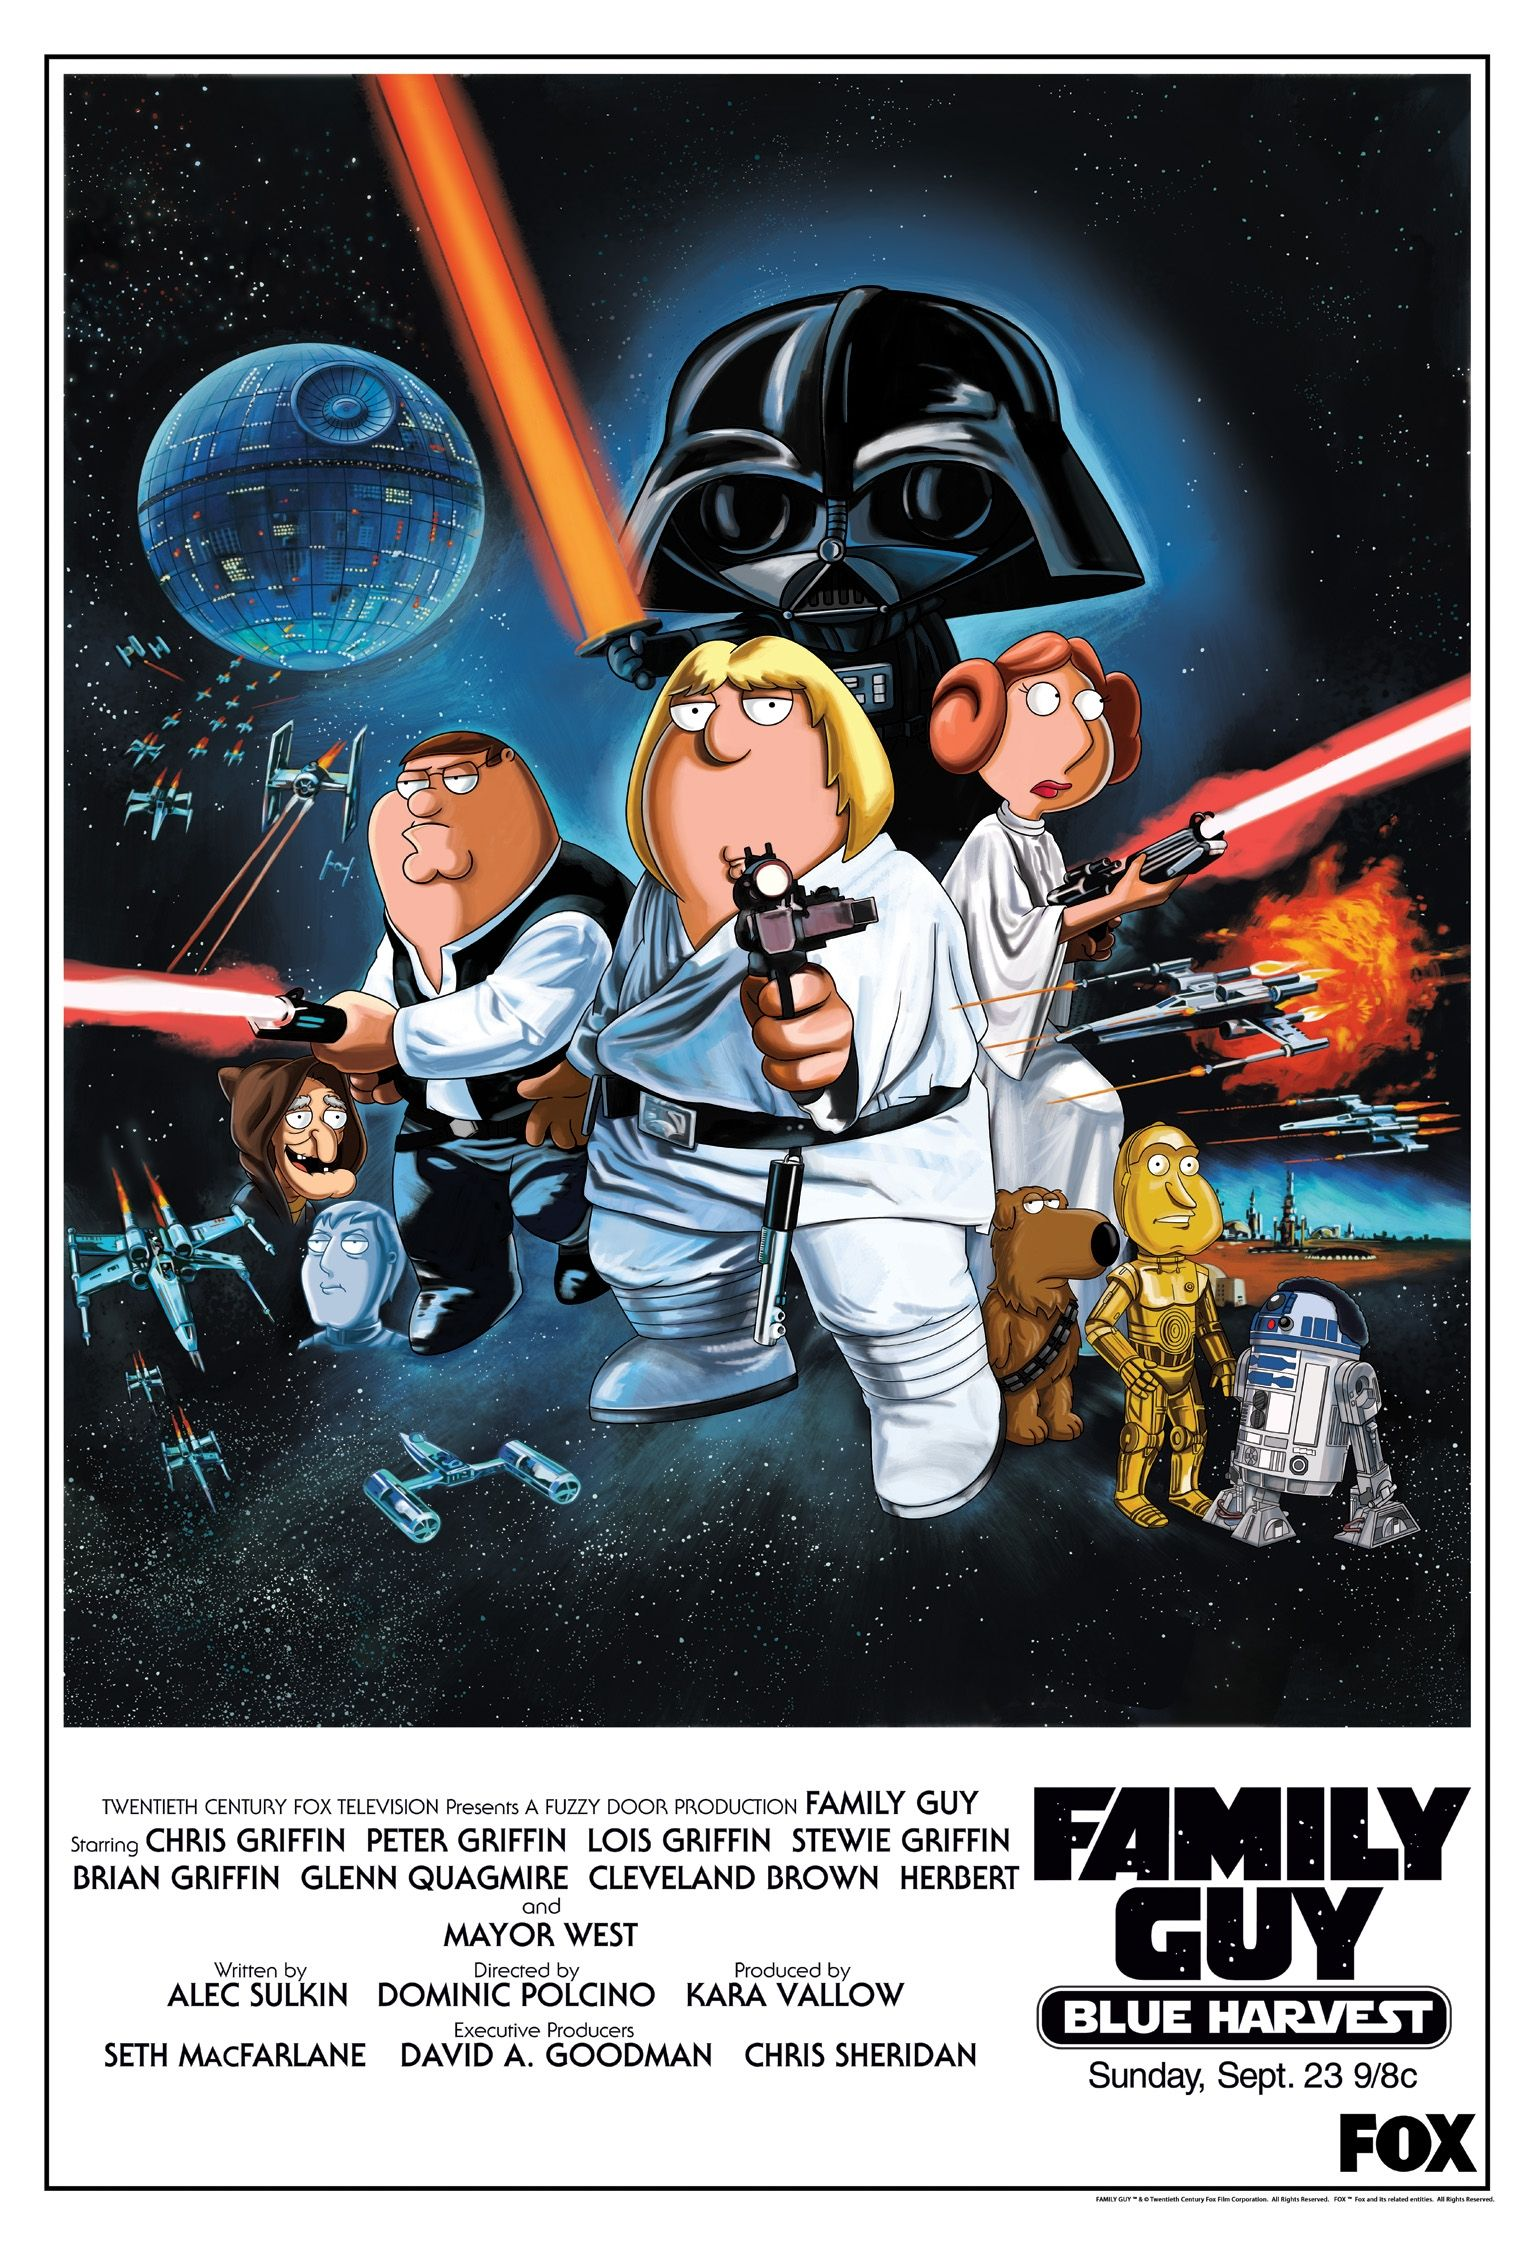 Star Wars Family Guy I Need To See This Things I Love Star